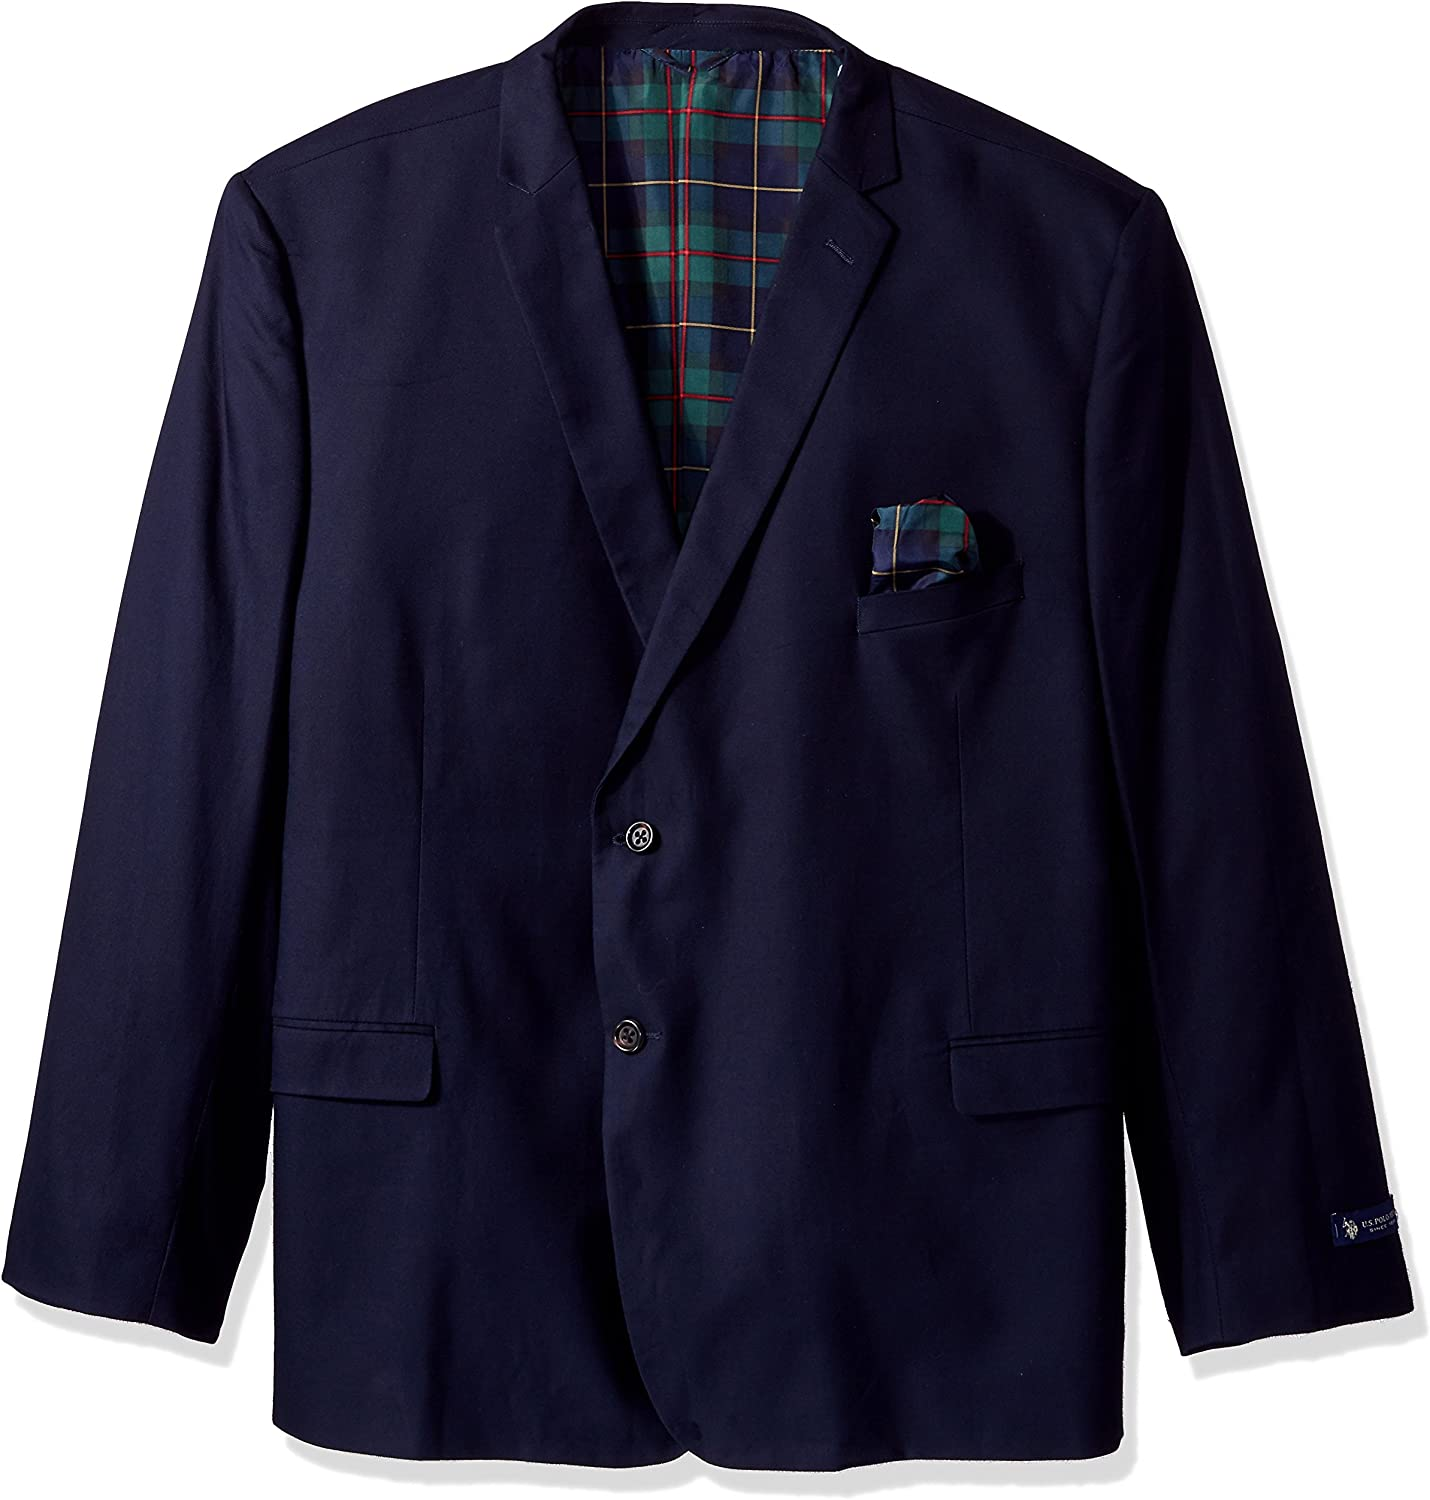 U.S. Polo Assn. Men's Big and Tall Cotton Sport Coat